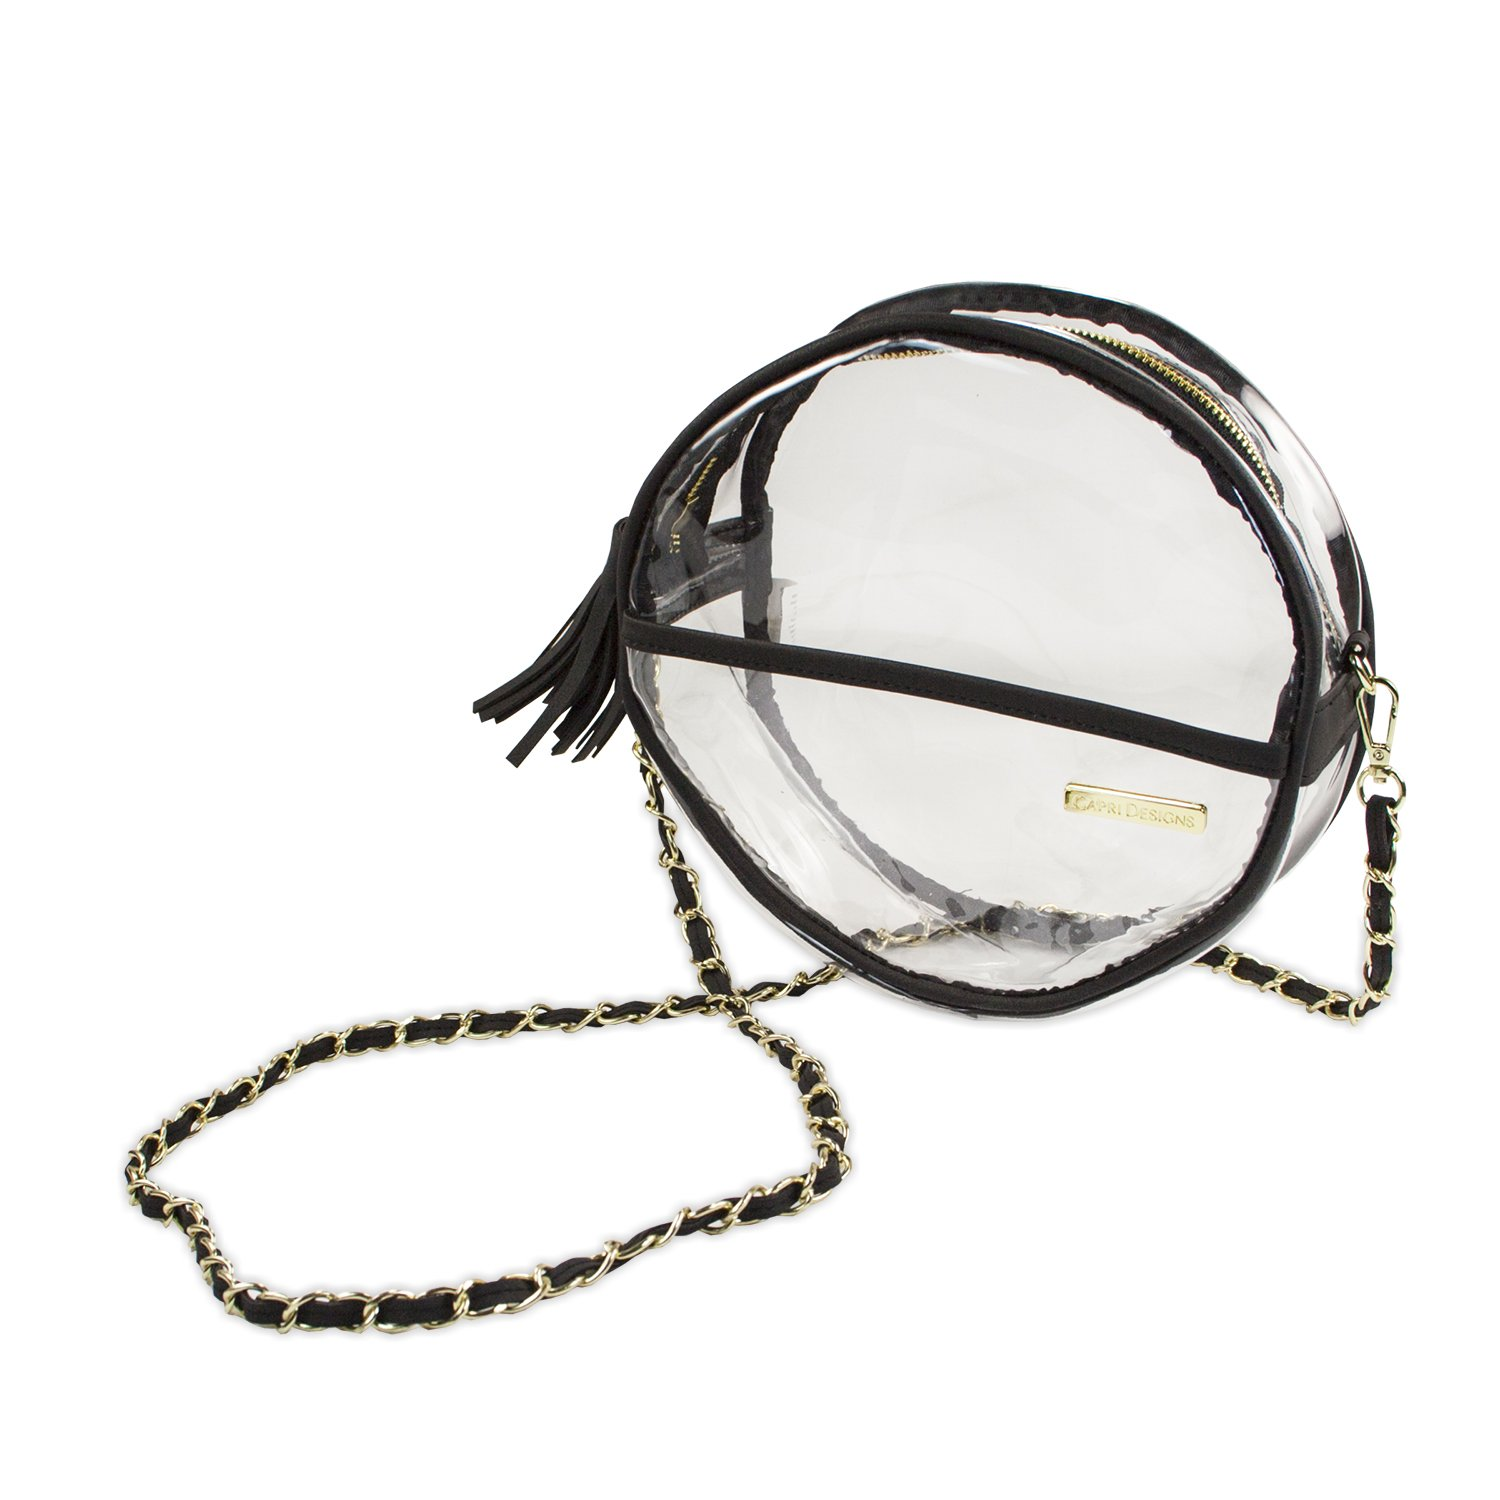 Capri Designs Clear Canteen Crossbody Purse, Round Stadium Approved Bag for Women, Transparent, Travel